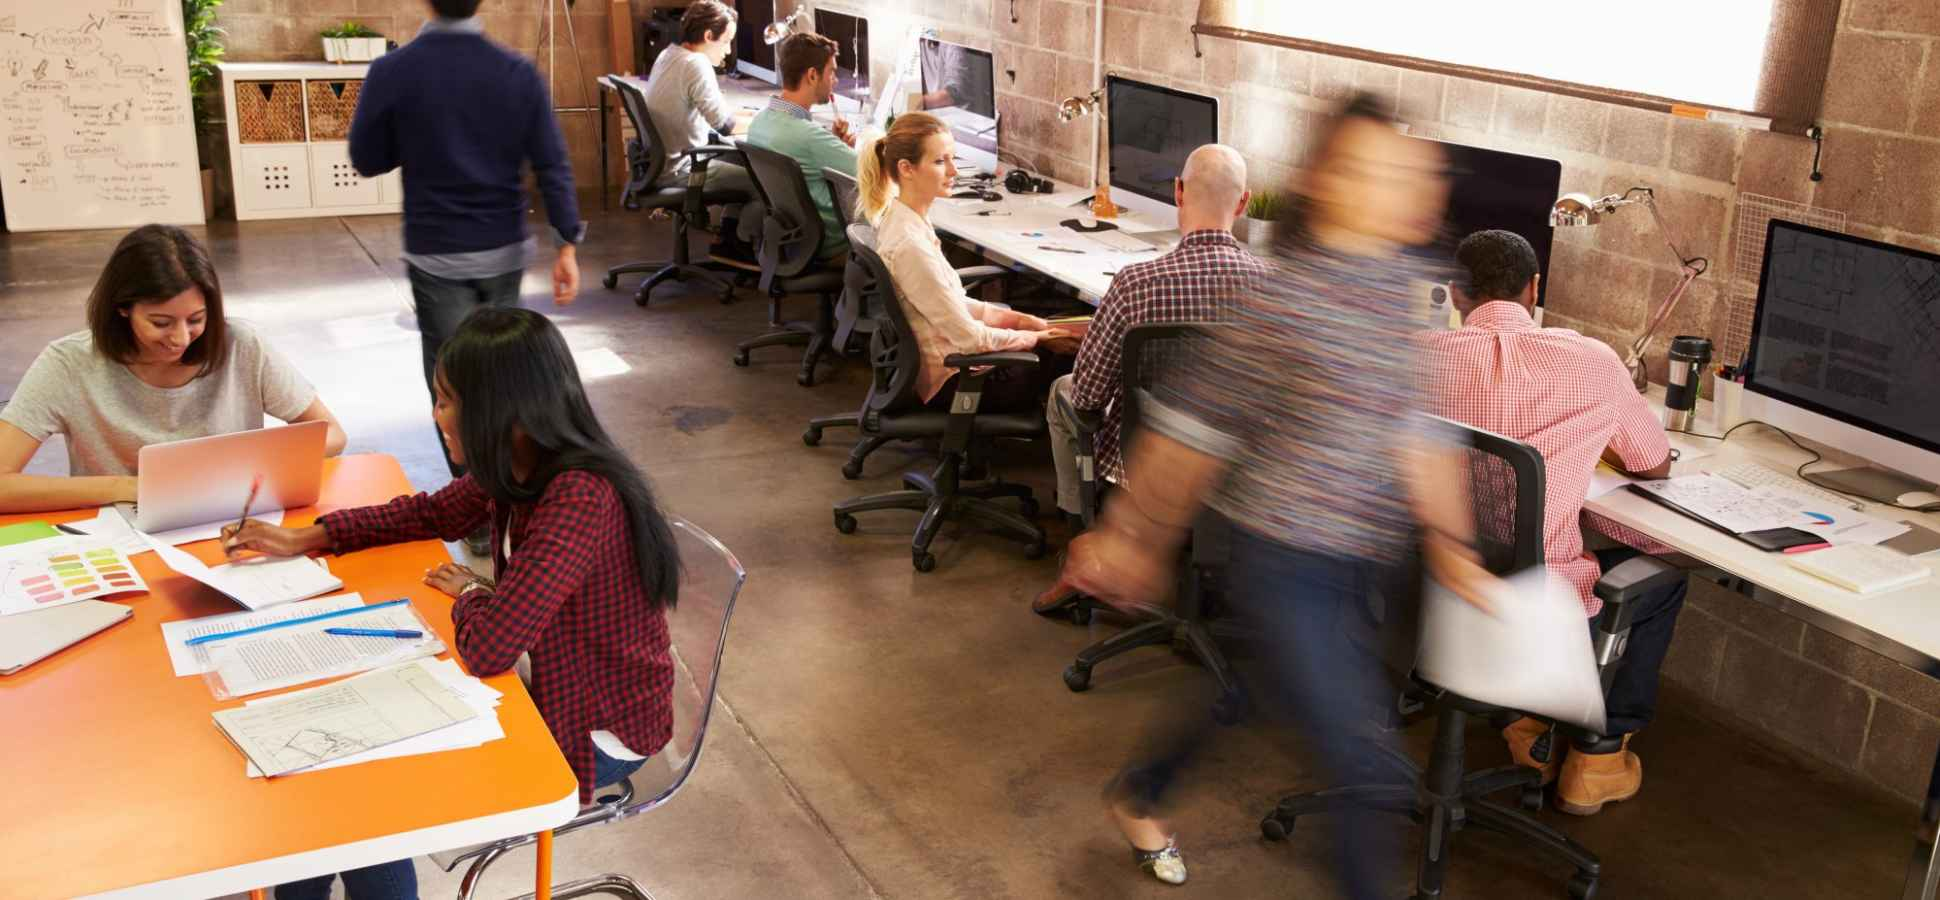 3 Things You Need to Know About Employee Motivation